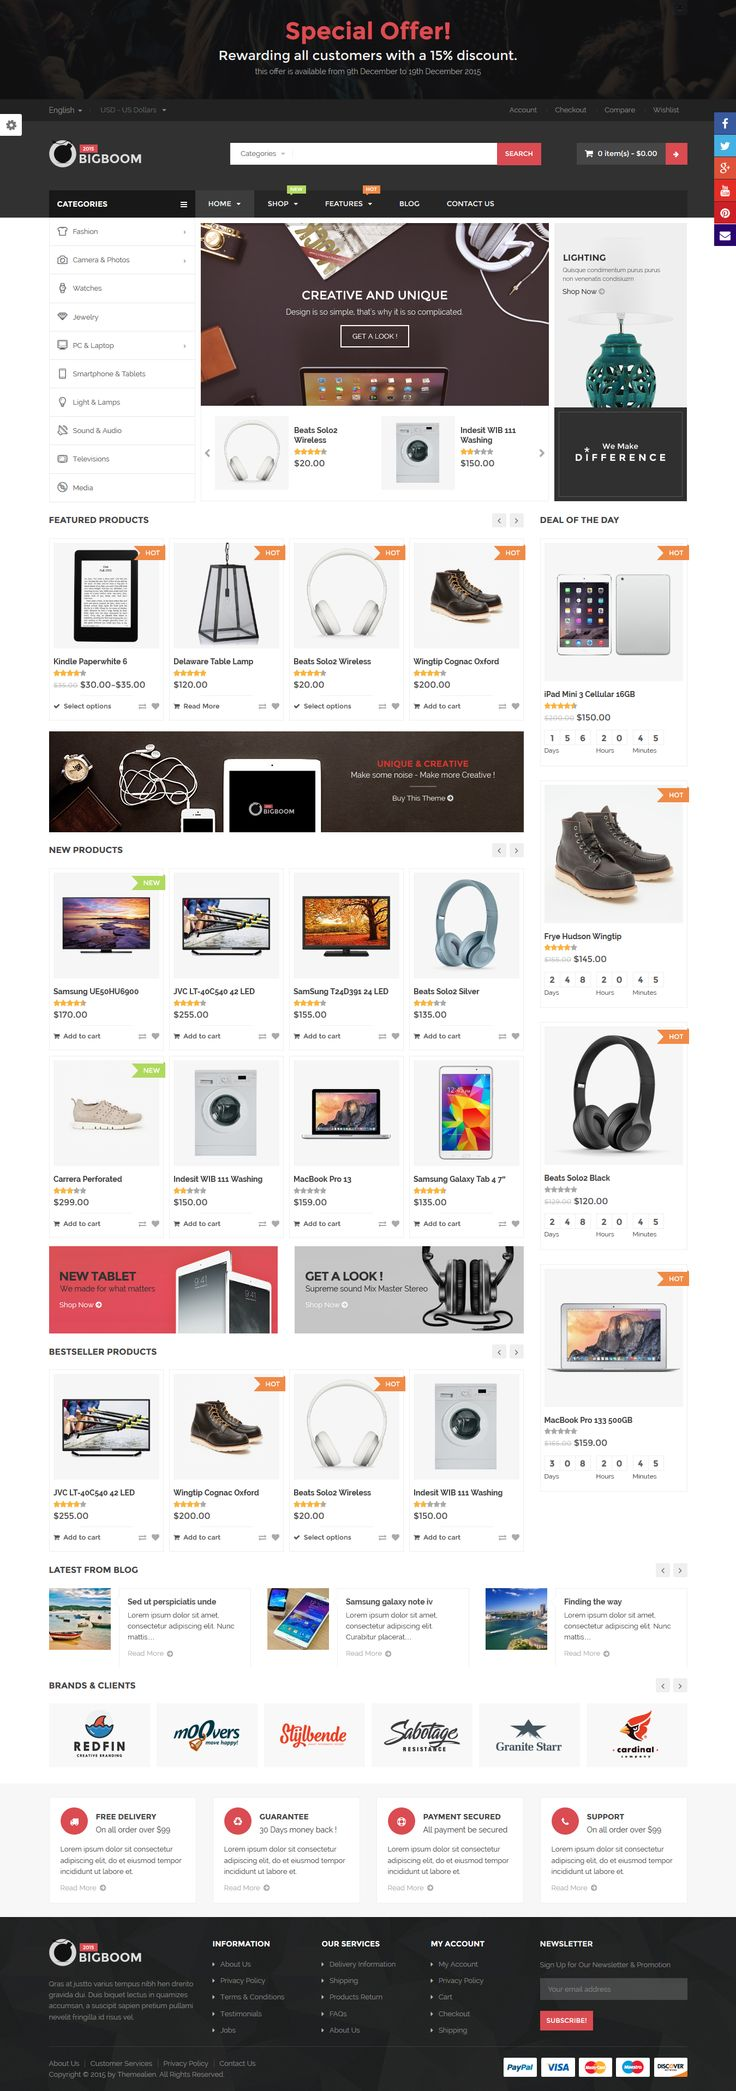 Bigboom is a professional and powerful WooCommerce Wordpress shopping theme for WordPress #webdesign Download: http://themeforest.net/item/bigboom-responsive-ecommerce-wordpress-theme/11099397?ref=ksioks